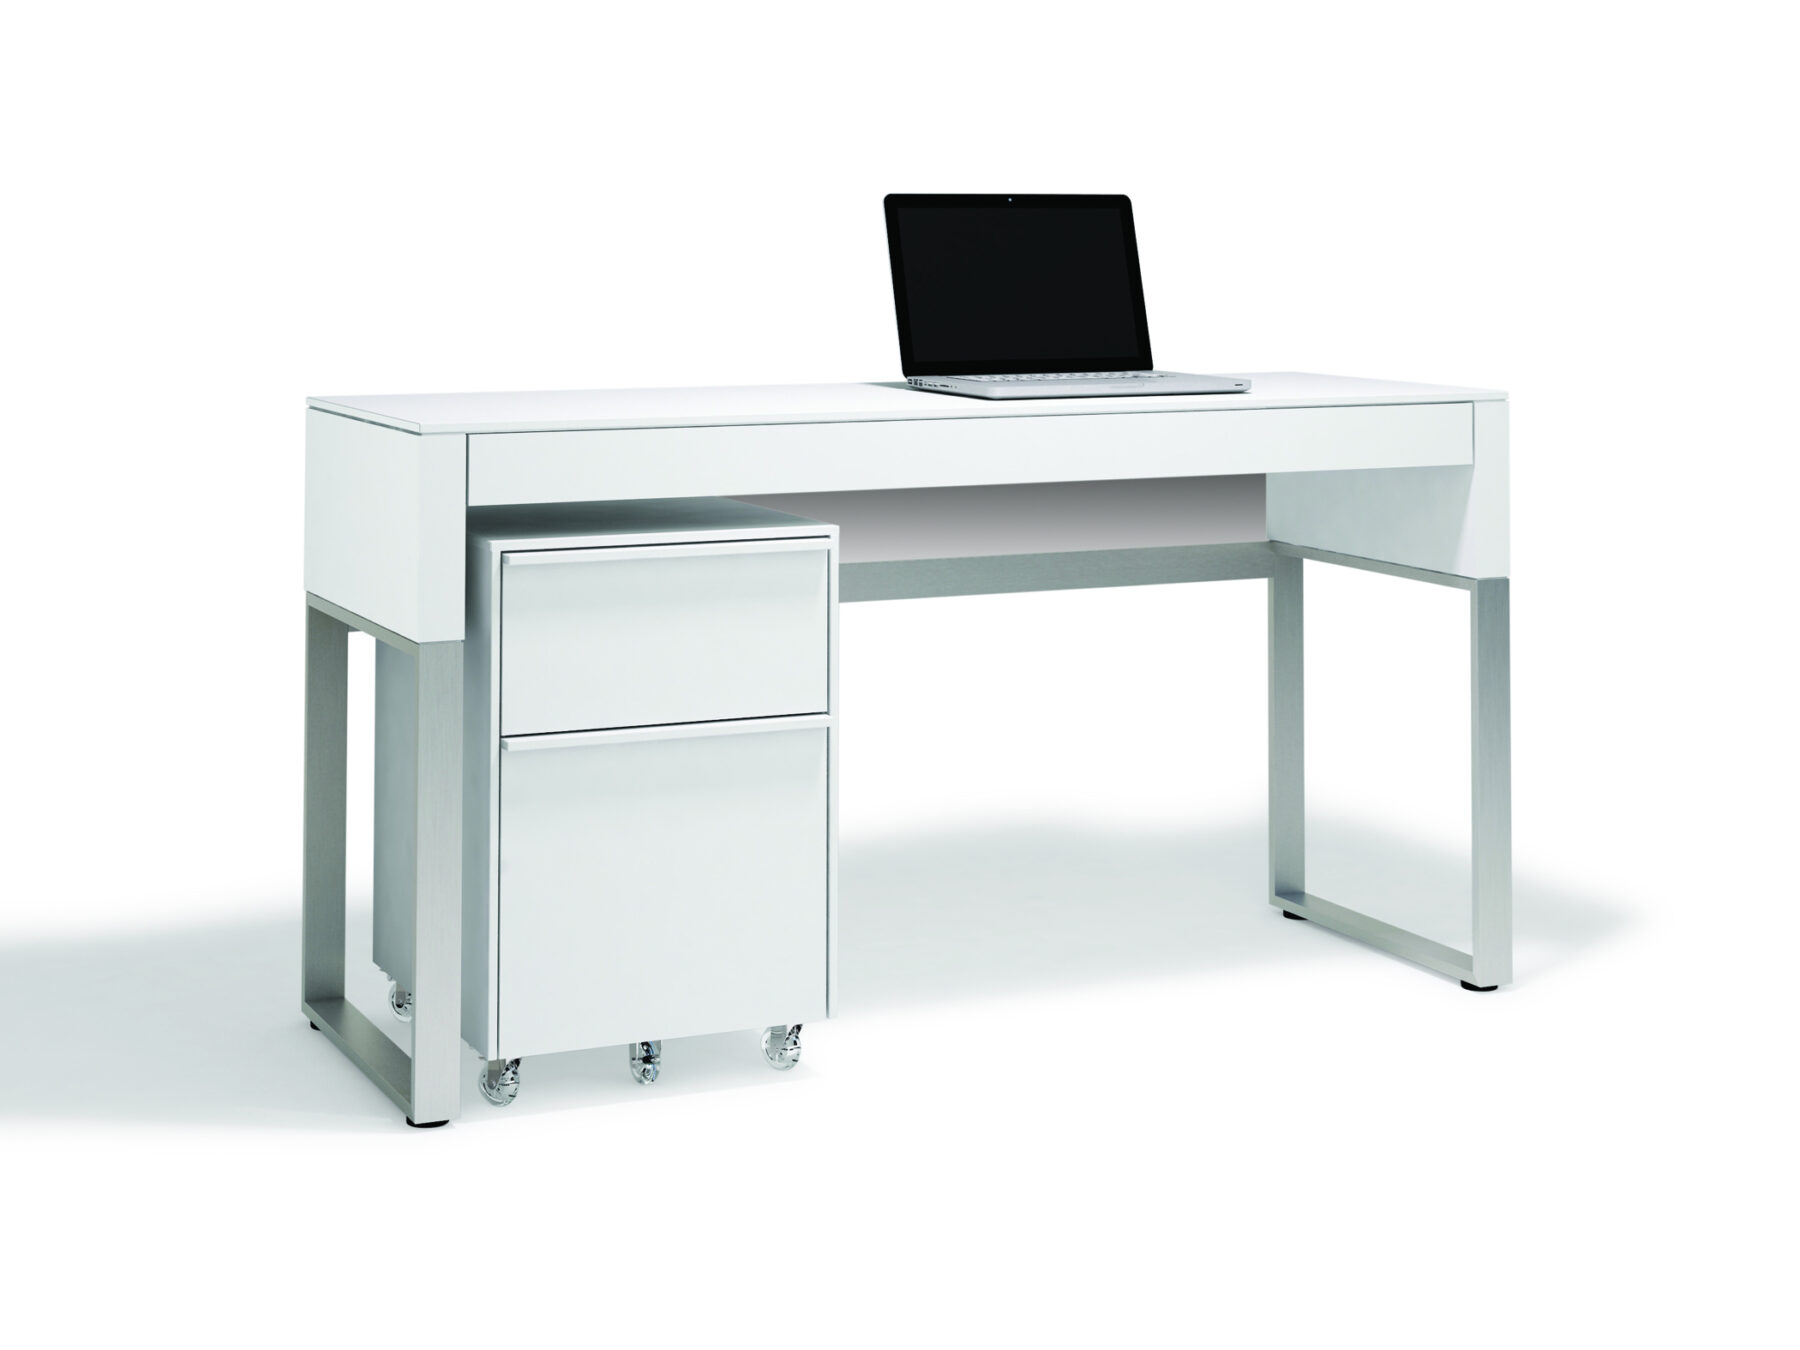 cascadia-6202-6207-white-bdi-modern-office-1